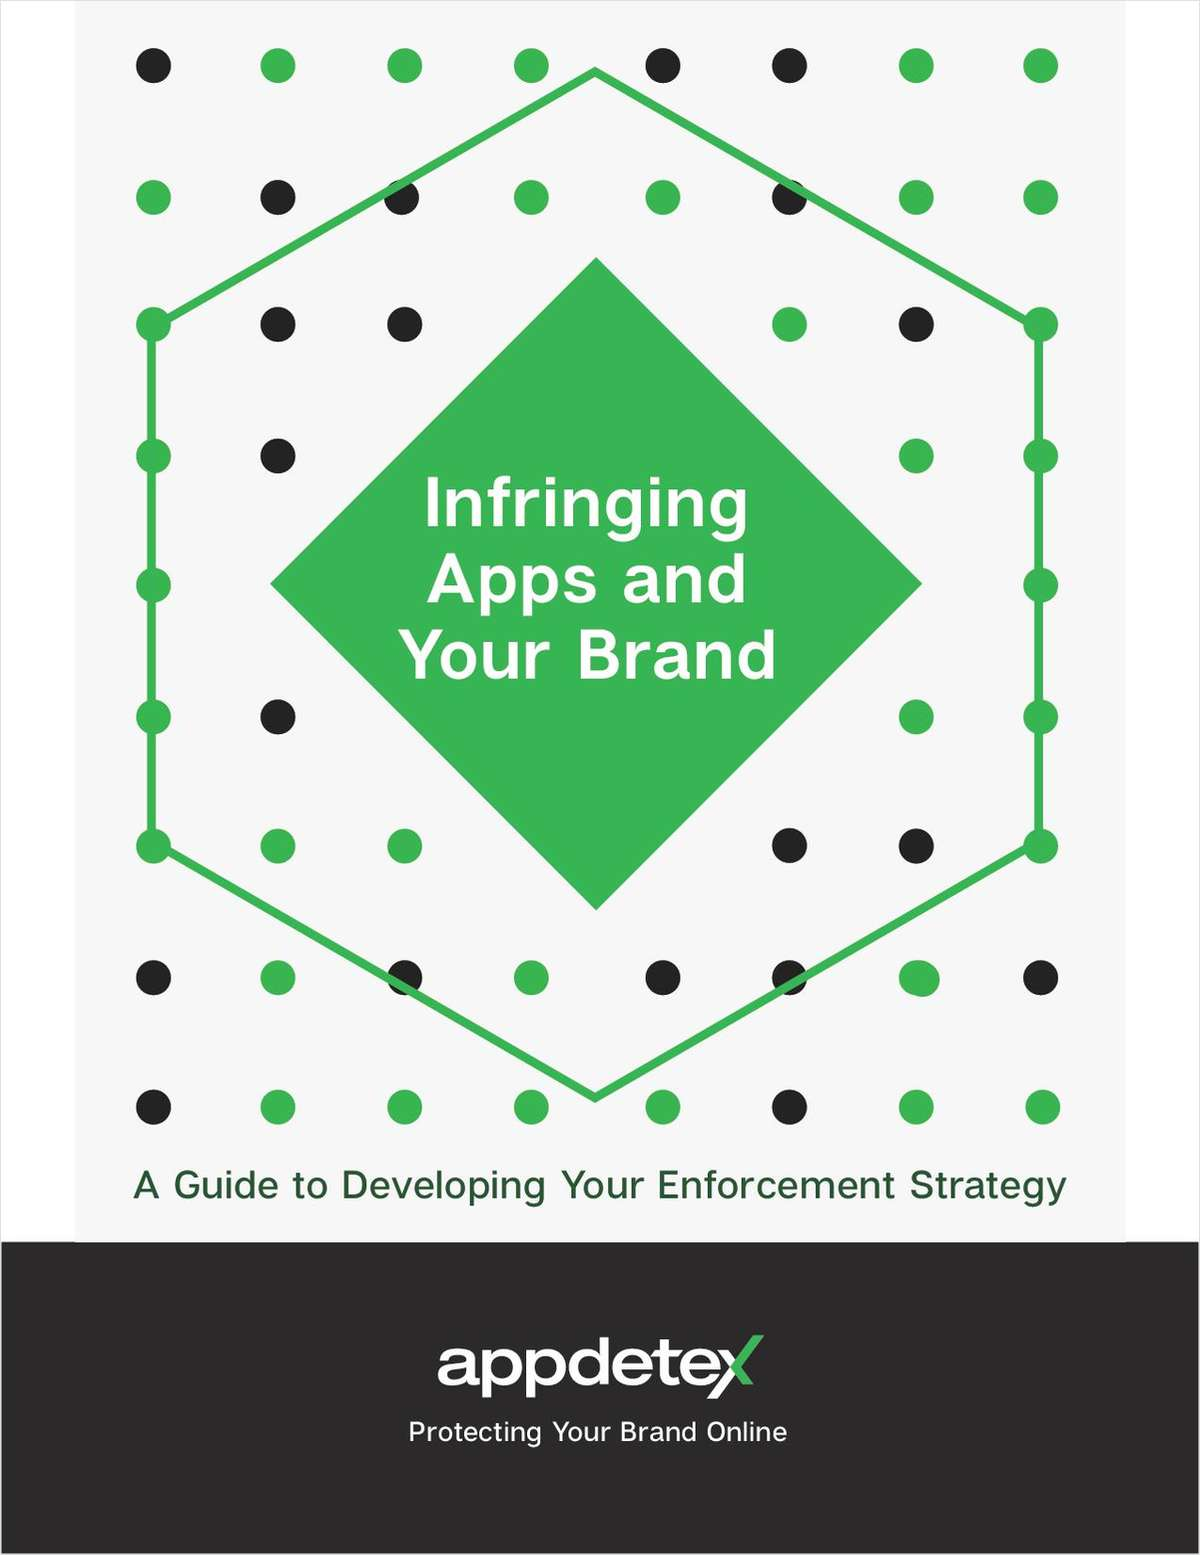 Infringing Apps and Your Brand